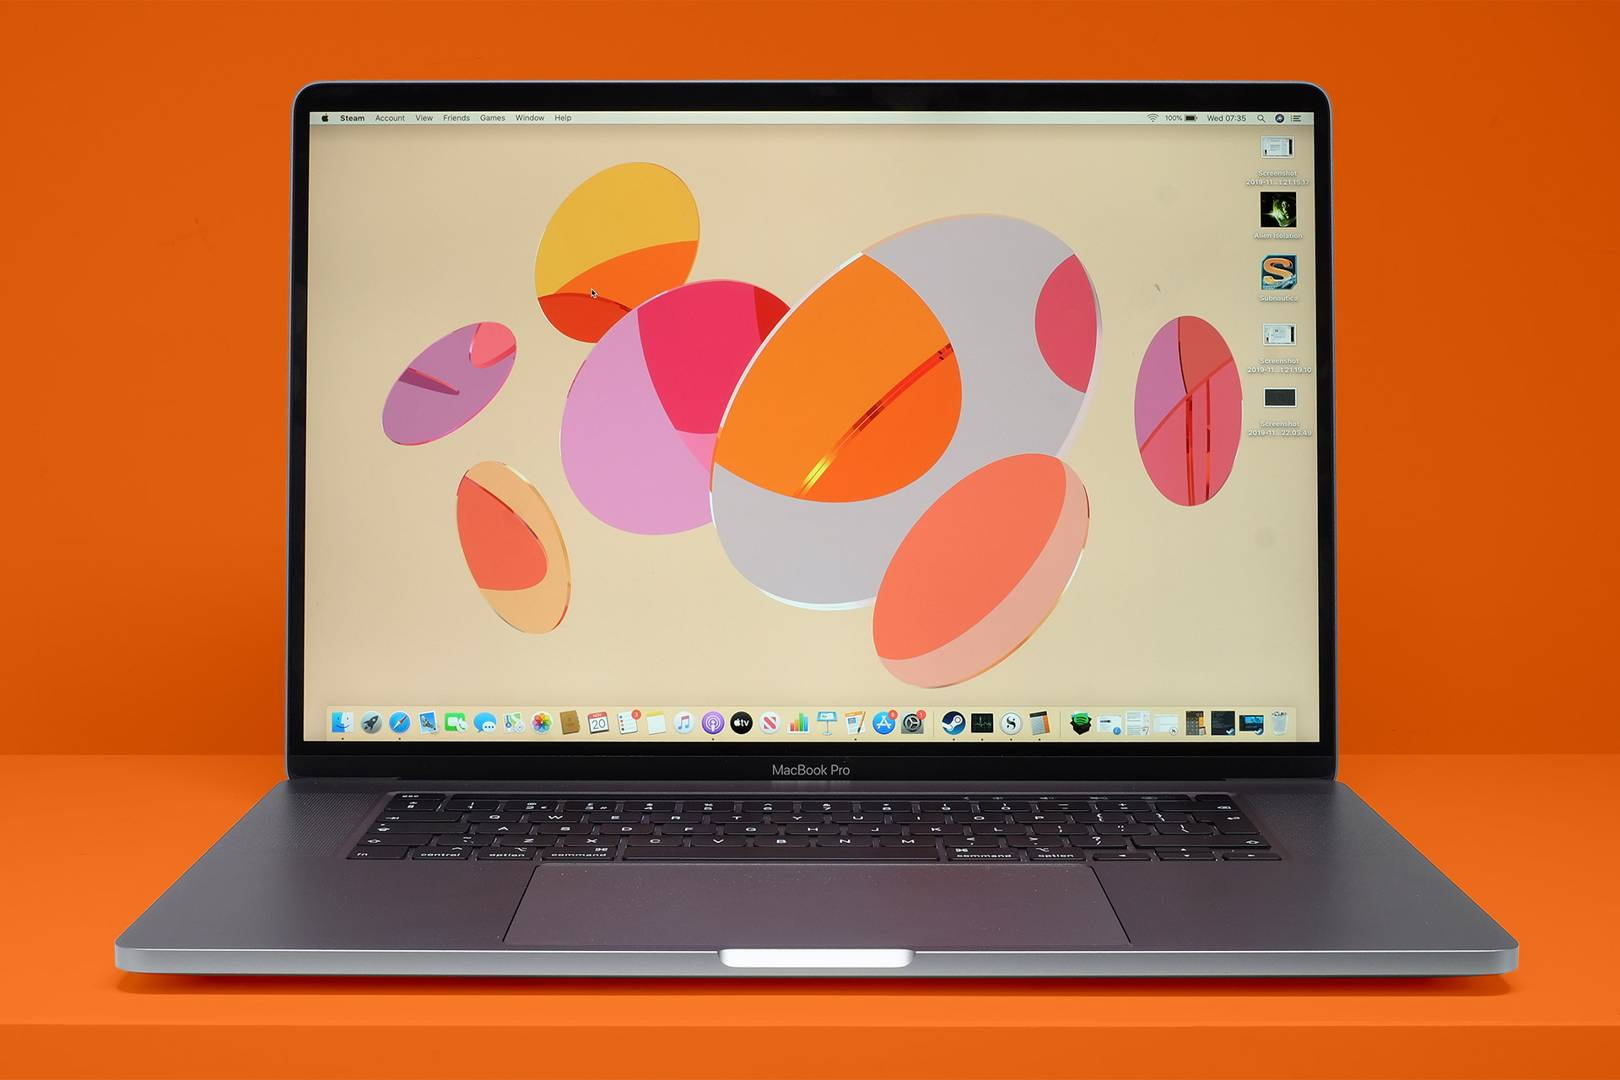 Apple MacBook Pro 16-inch review: an apology for past failures